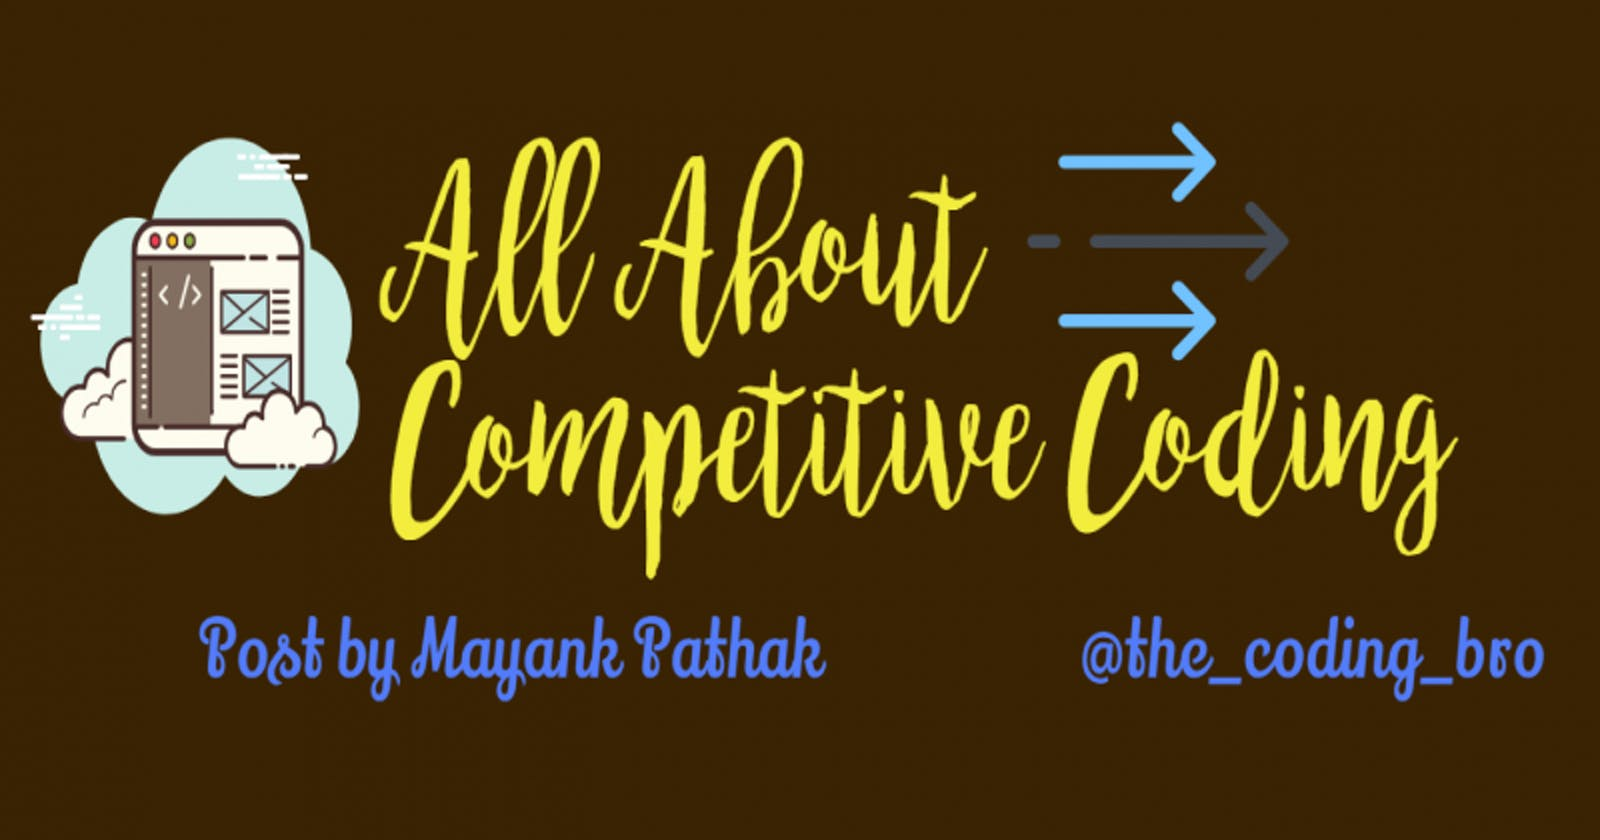 All About Competitive Coding👨💻